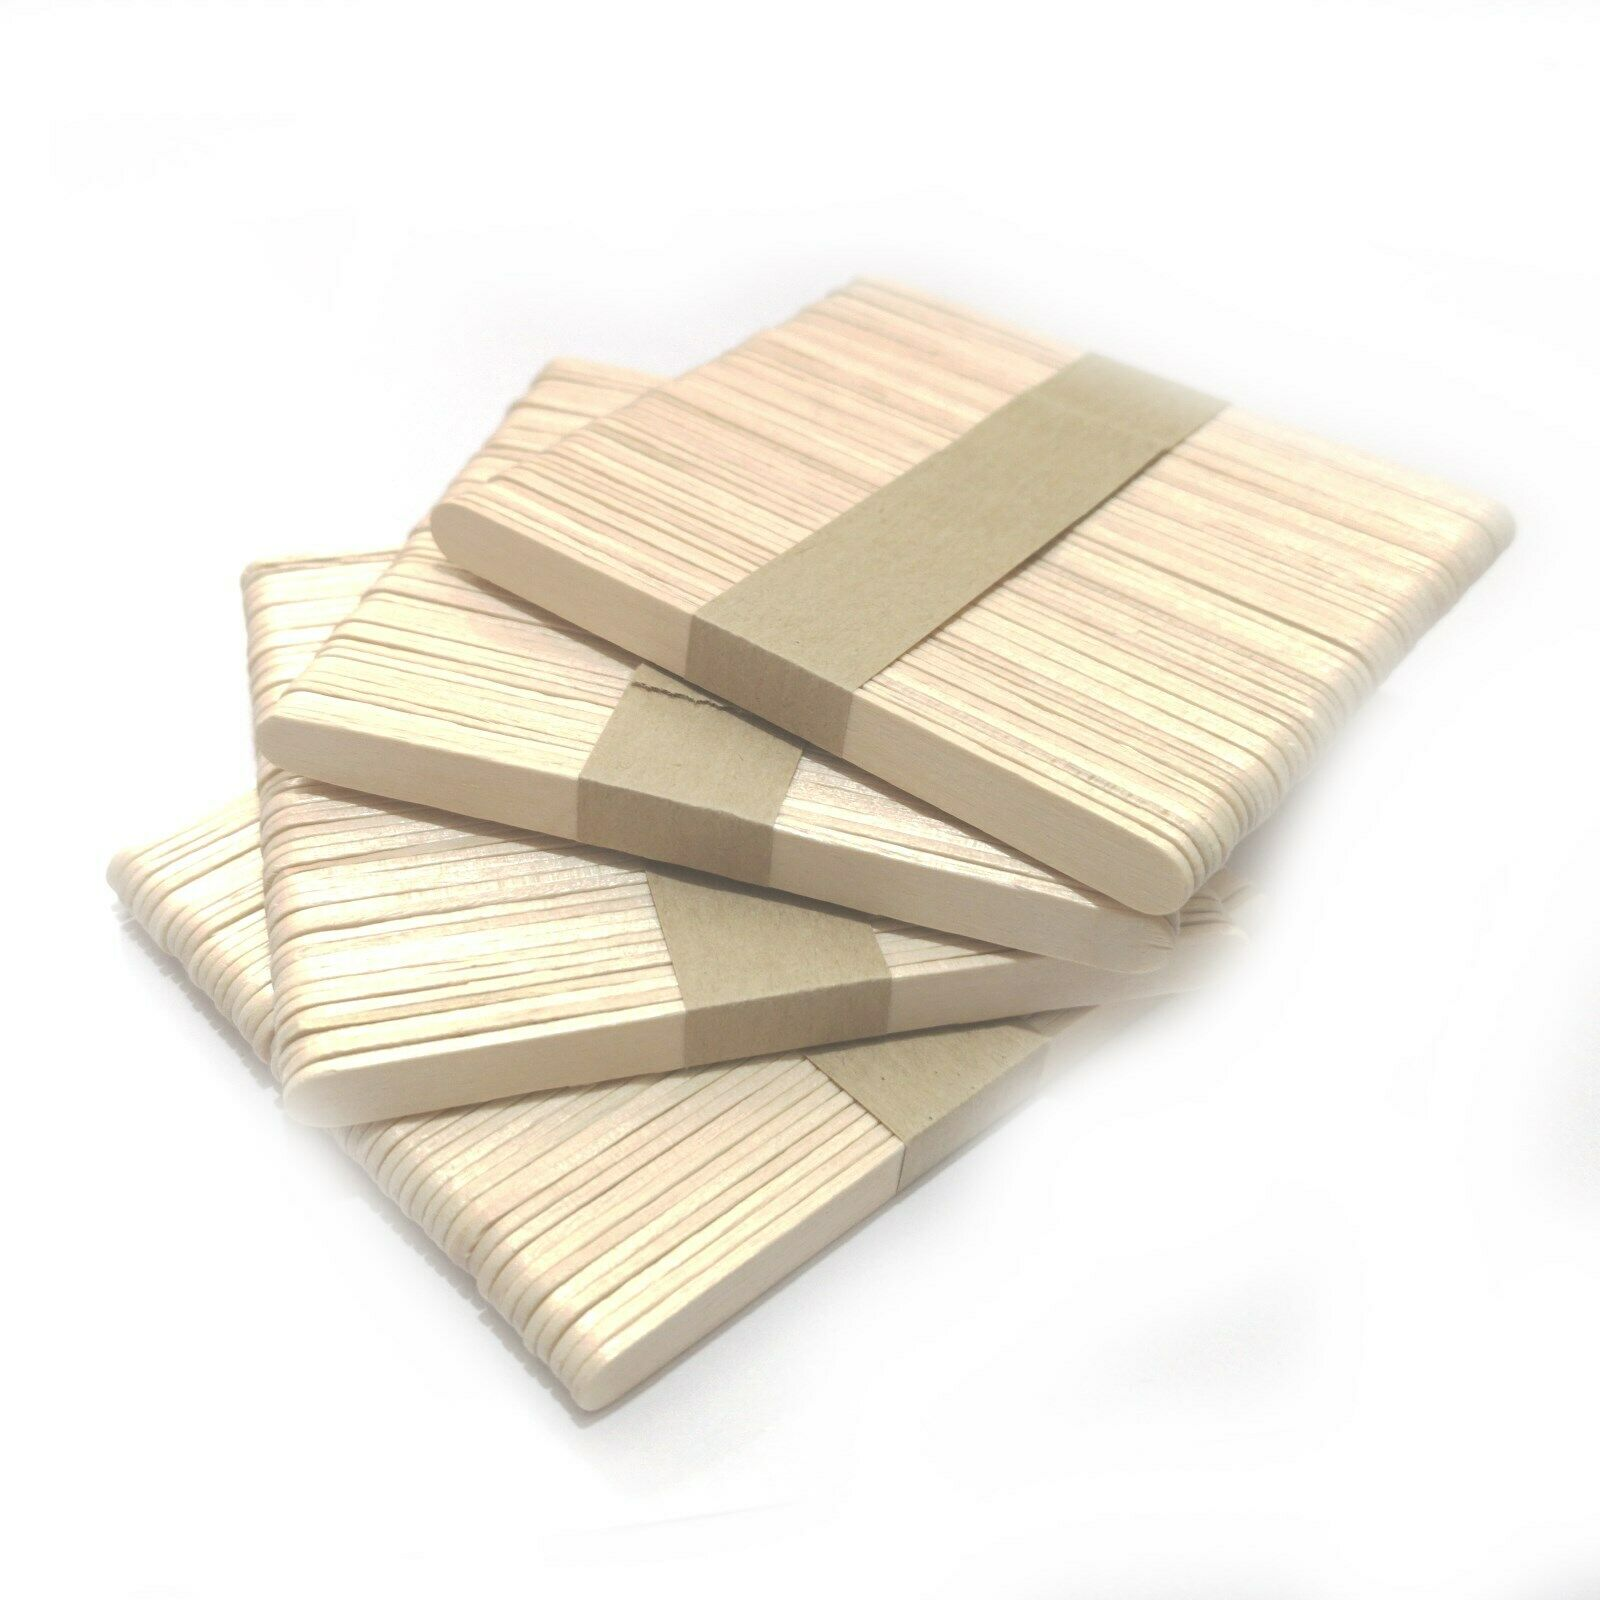 50 Lolly Sticks Superior Quality Birch Craft Plant Label Lollipops Models Waxing